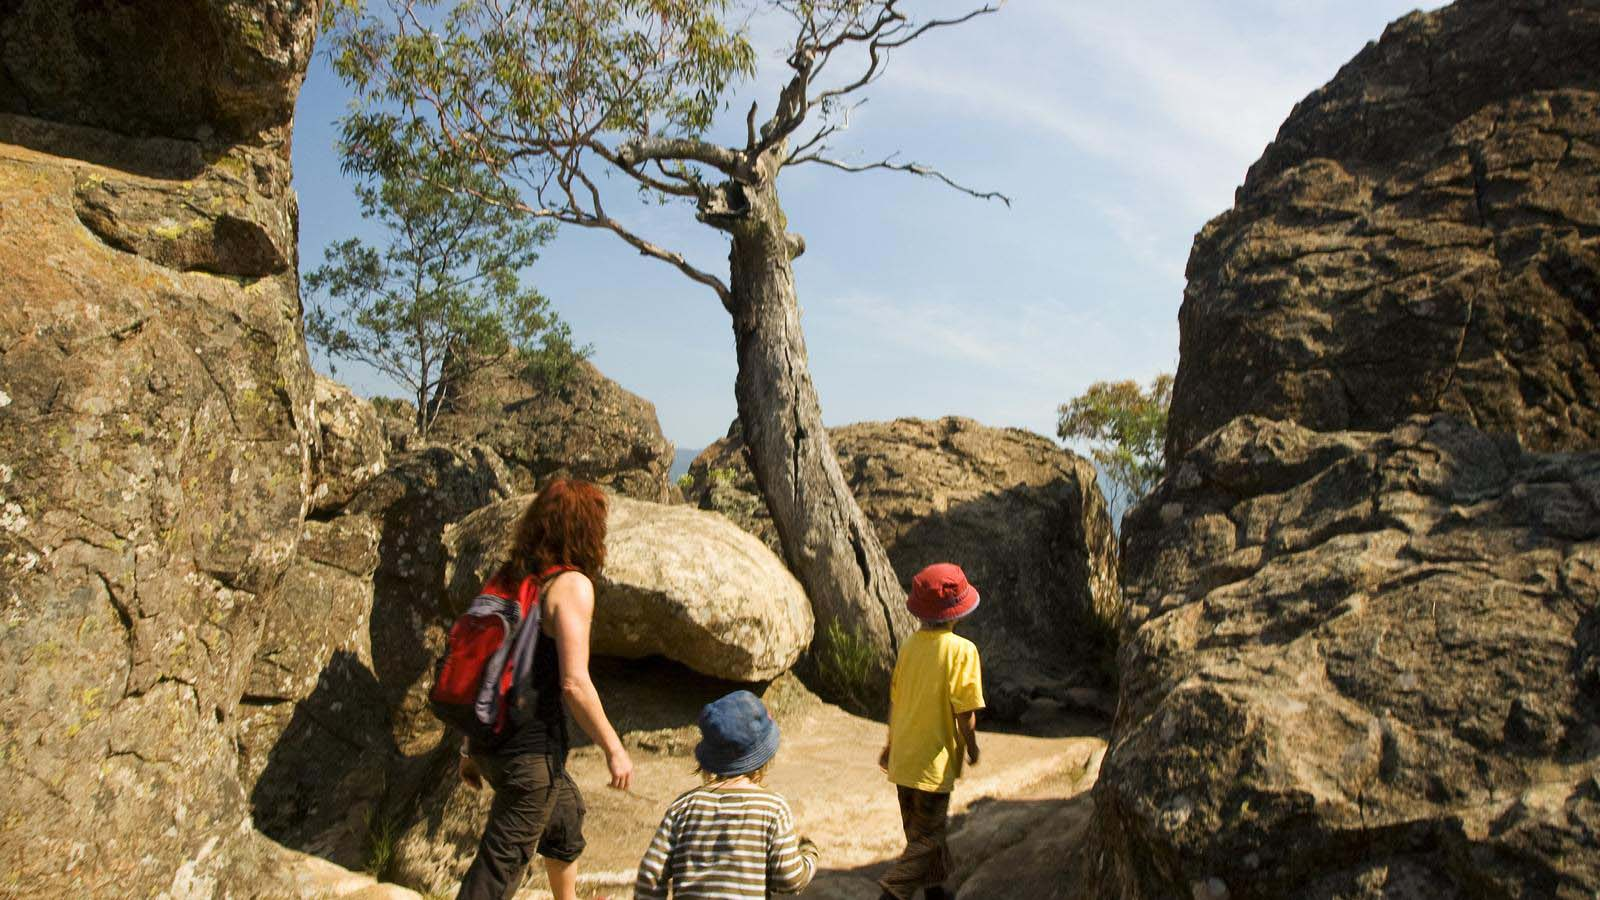 Hiking at Hanging Rock, Daylesford and the Macedon Ranges, Victoria, Australia